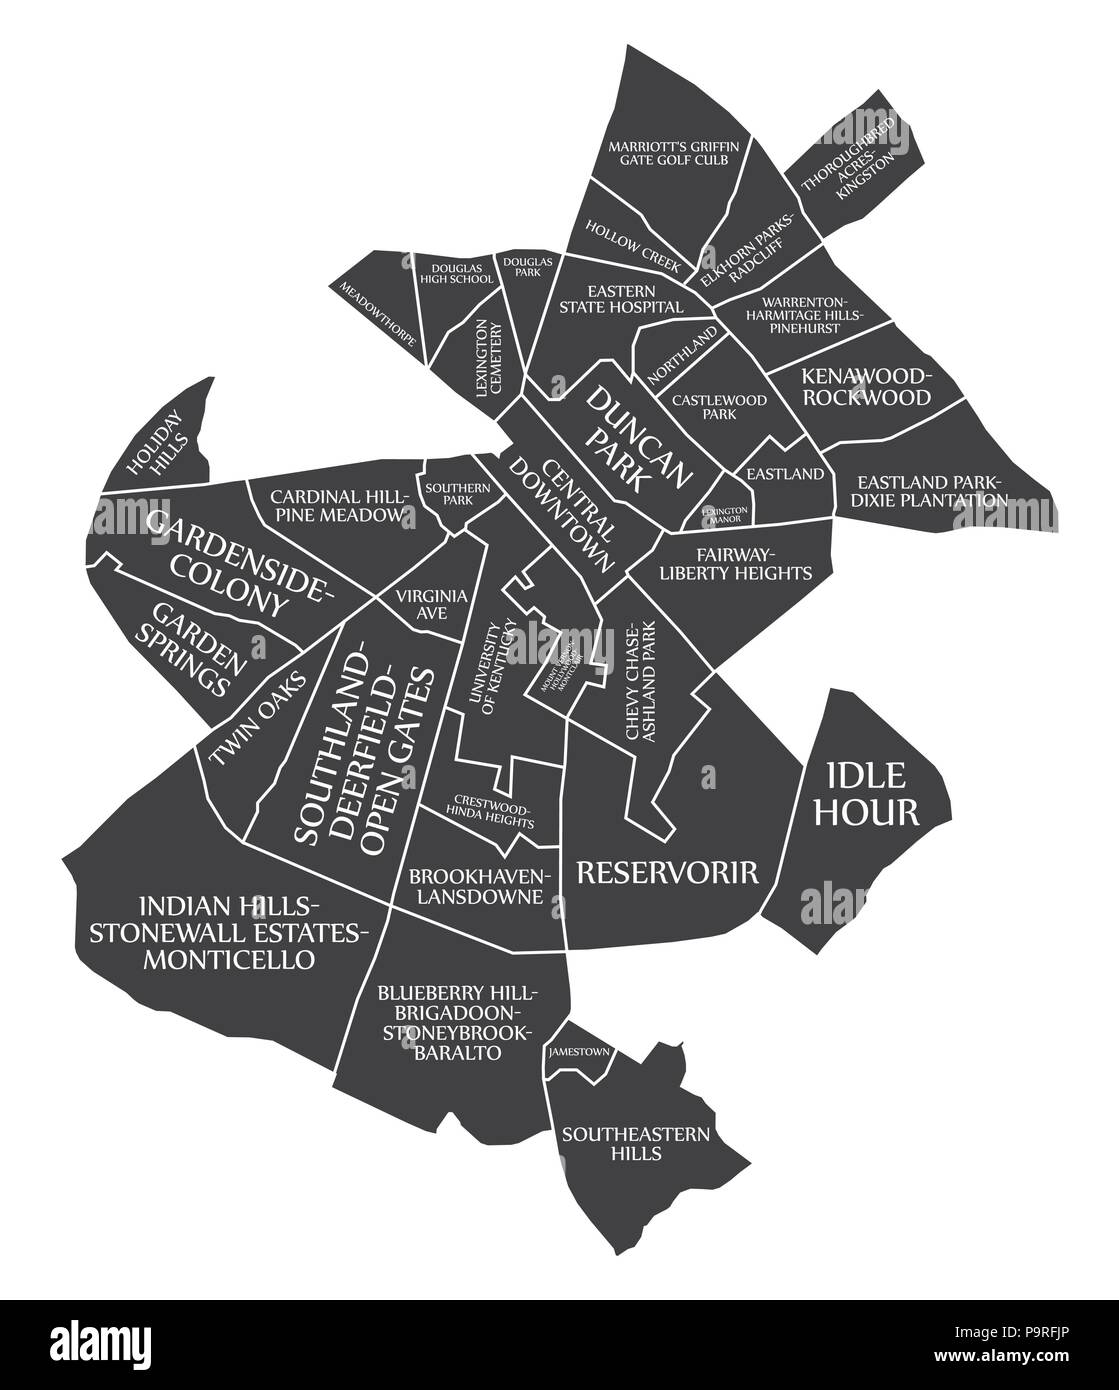 Lexington-Fayette Kentucky city map USA labelled black illustration on map of kentucky universities, map indiana in usa, map of kentucky elsewhere, map ohio in usa, map of kentucky paris,